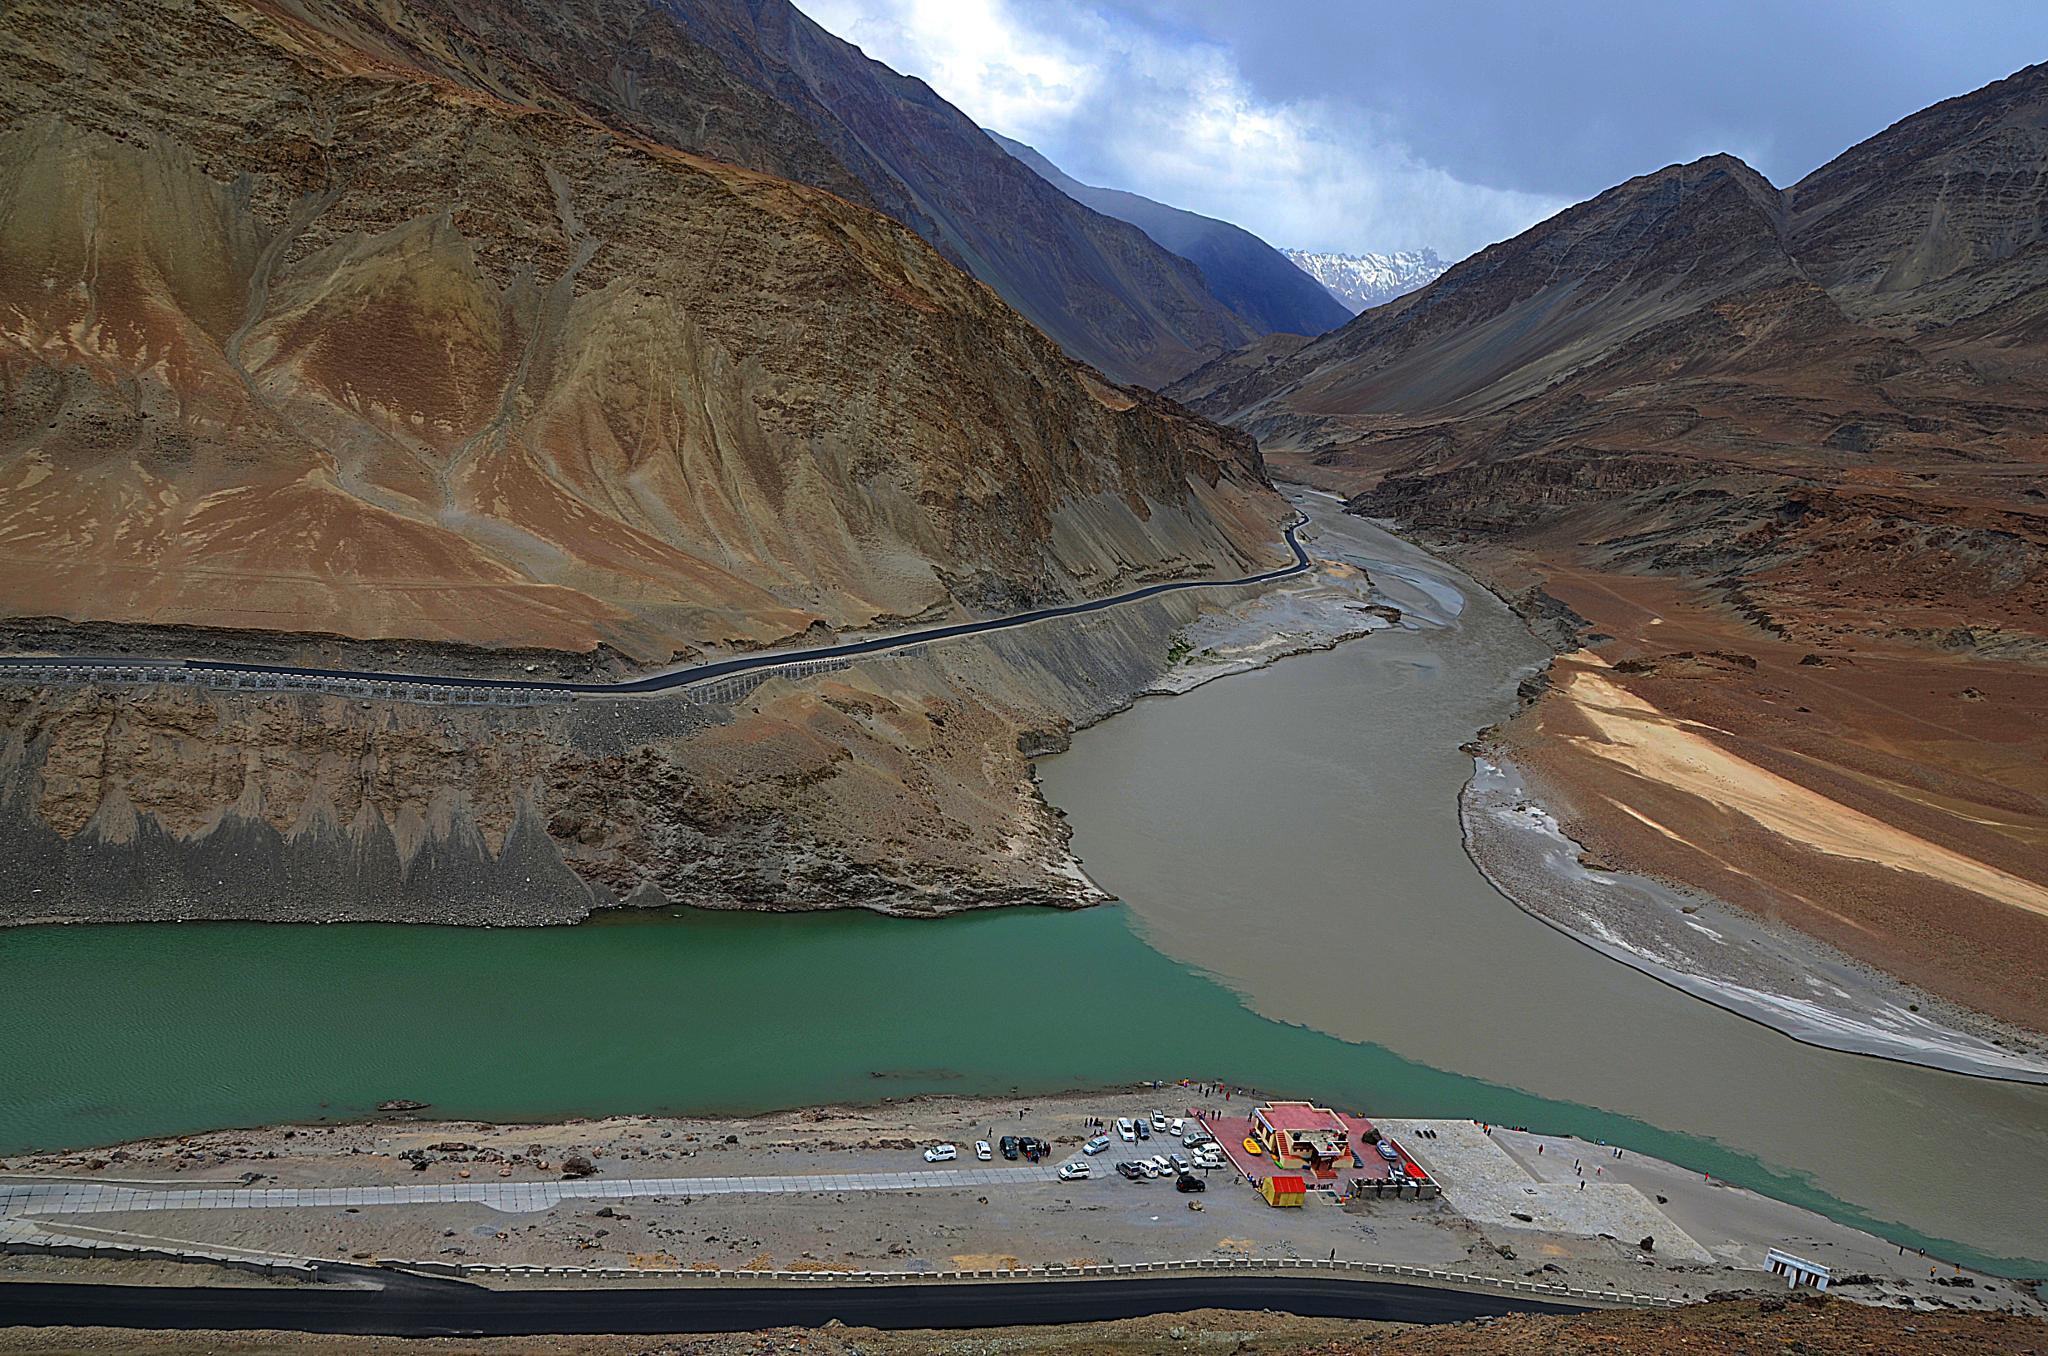 The Confluence of the River Indus and Zanskar by Aveik Dk